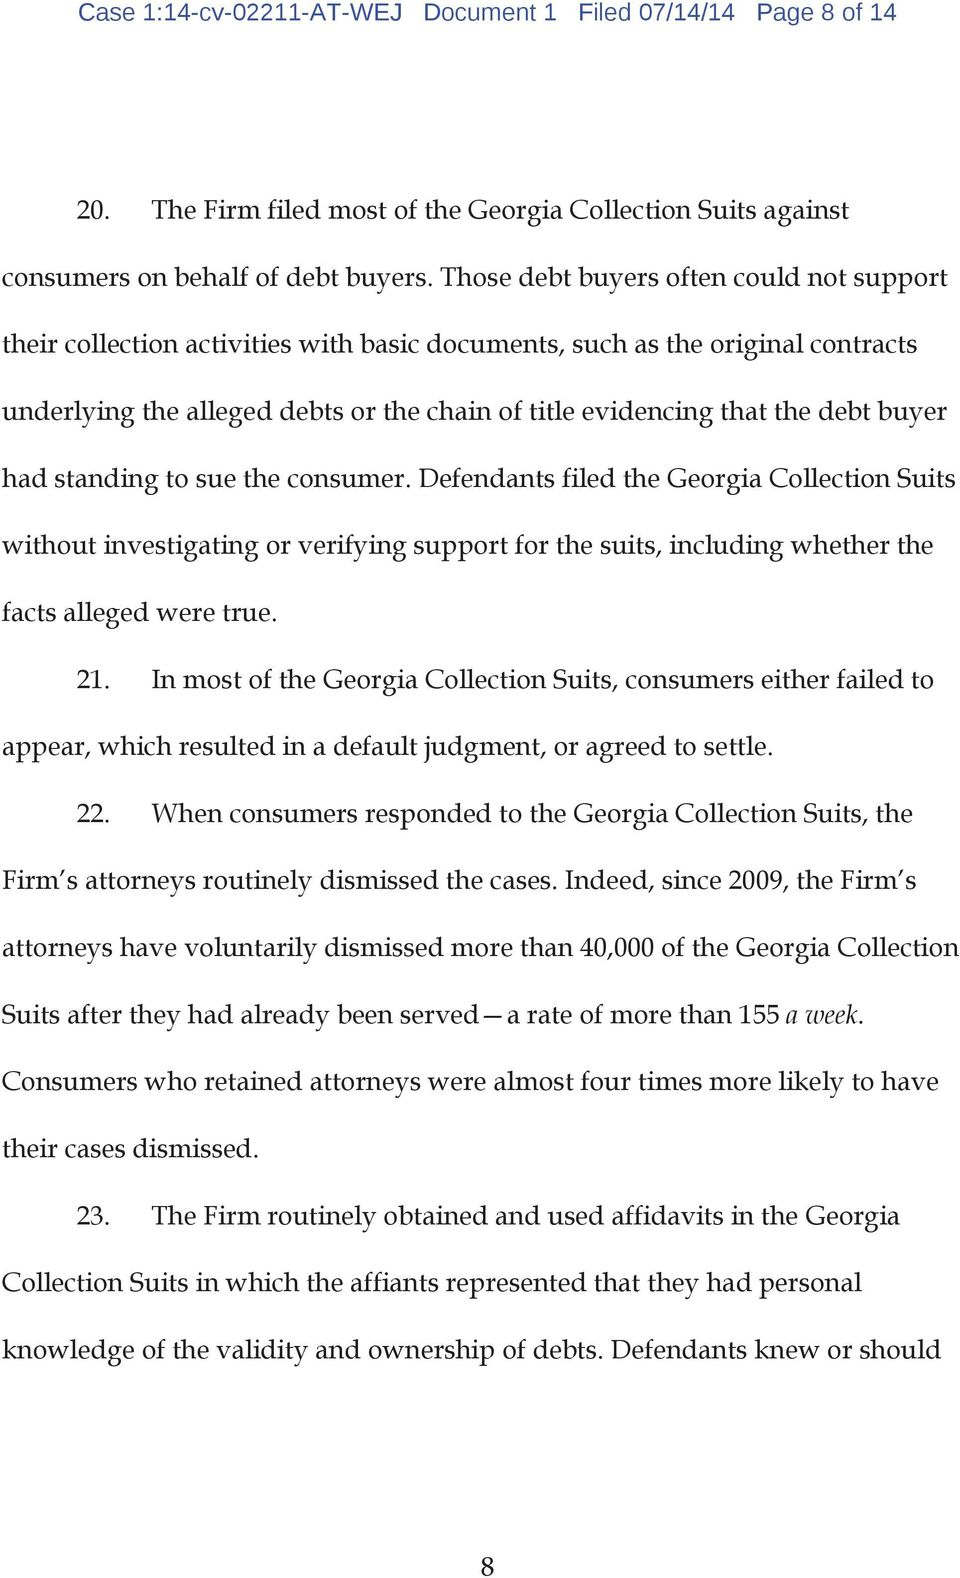 buyer had standing to sue the consumer. Defendants filed the Georgia Collection Suits without investigating or verifying support for the suits, including whether the facts alleged were true. 21.